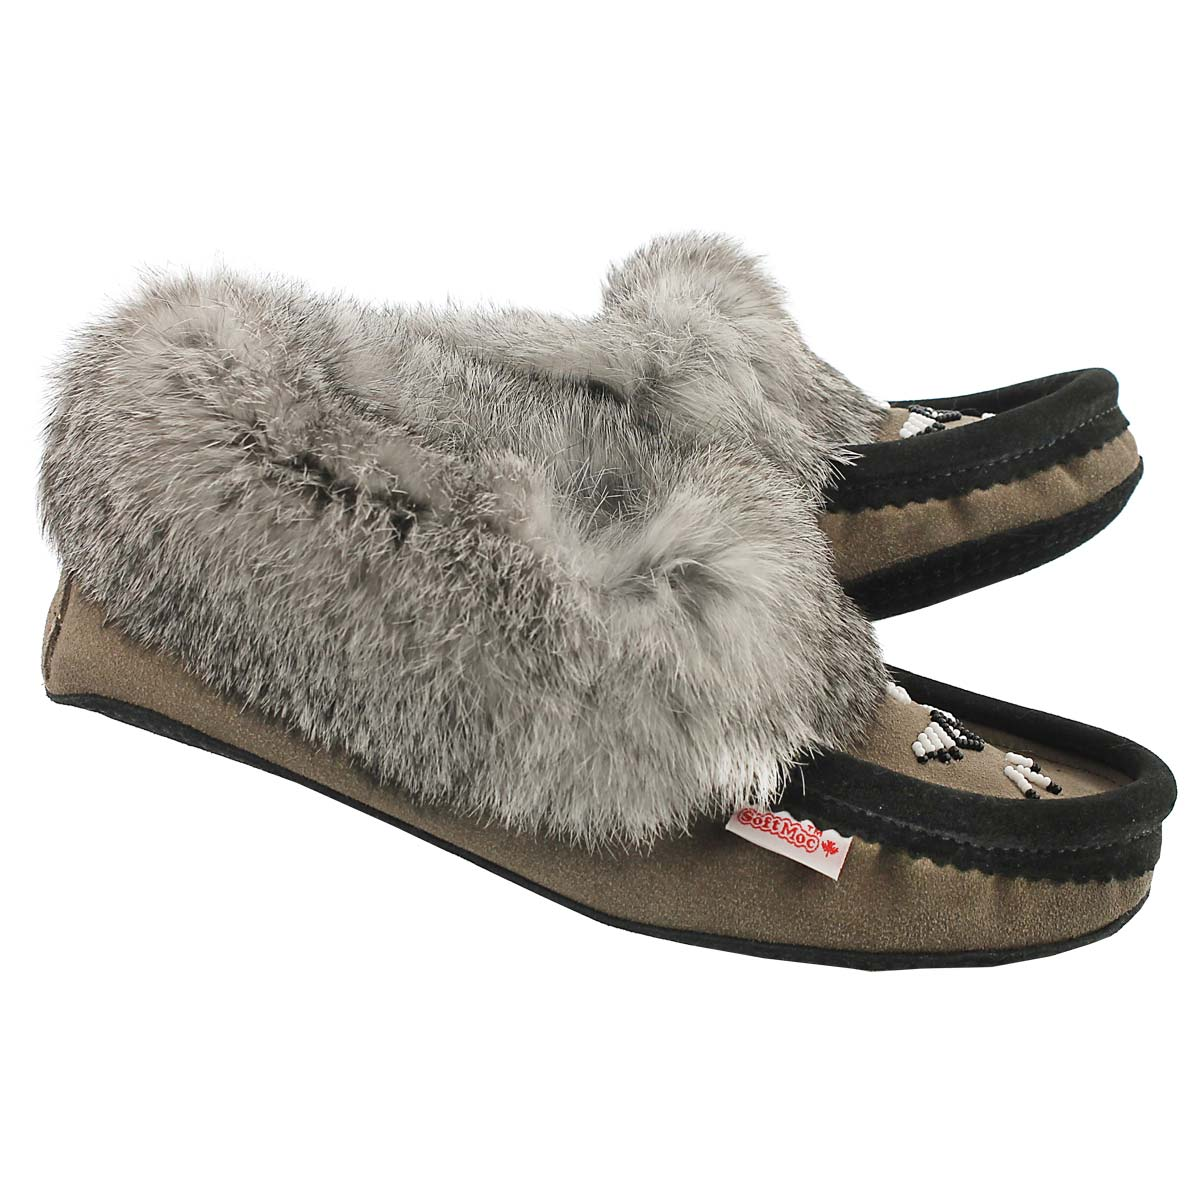 Lds grey rabbit fur moccasin